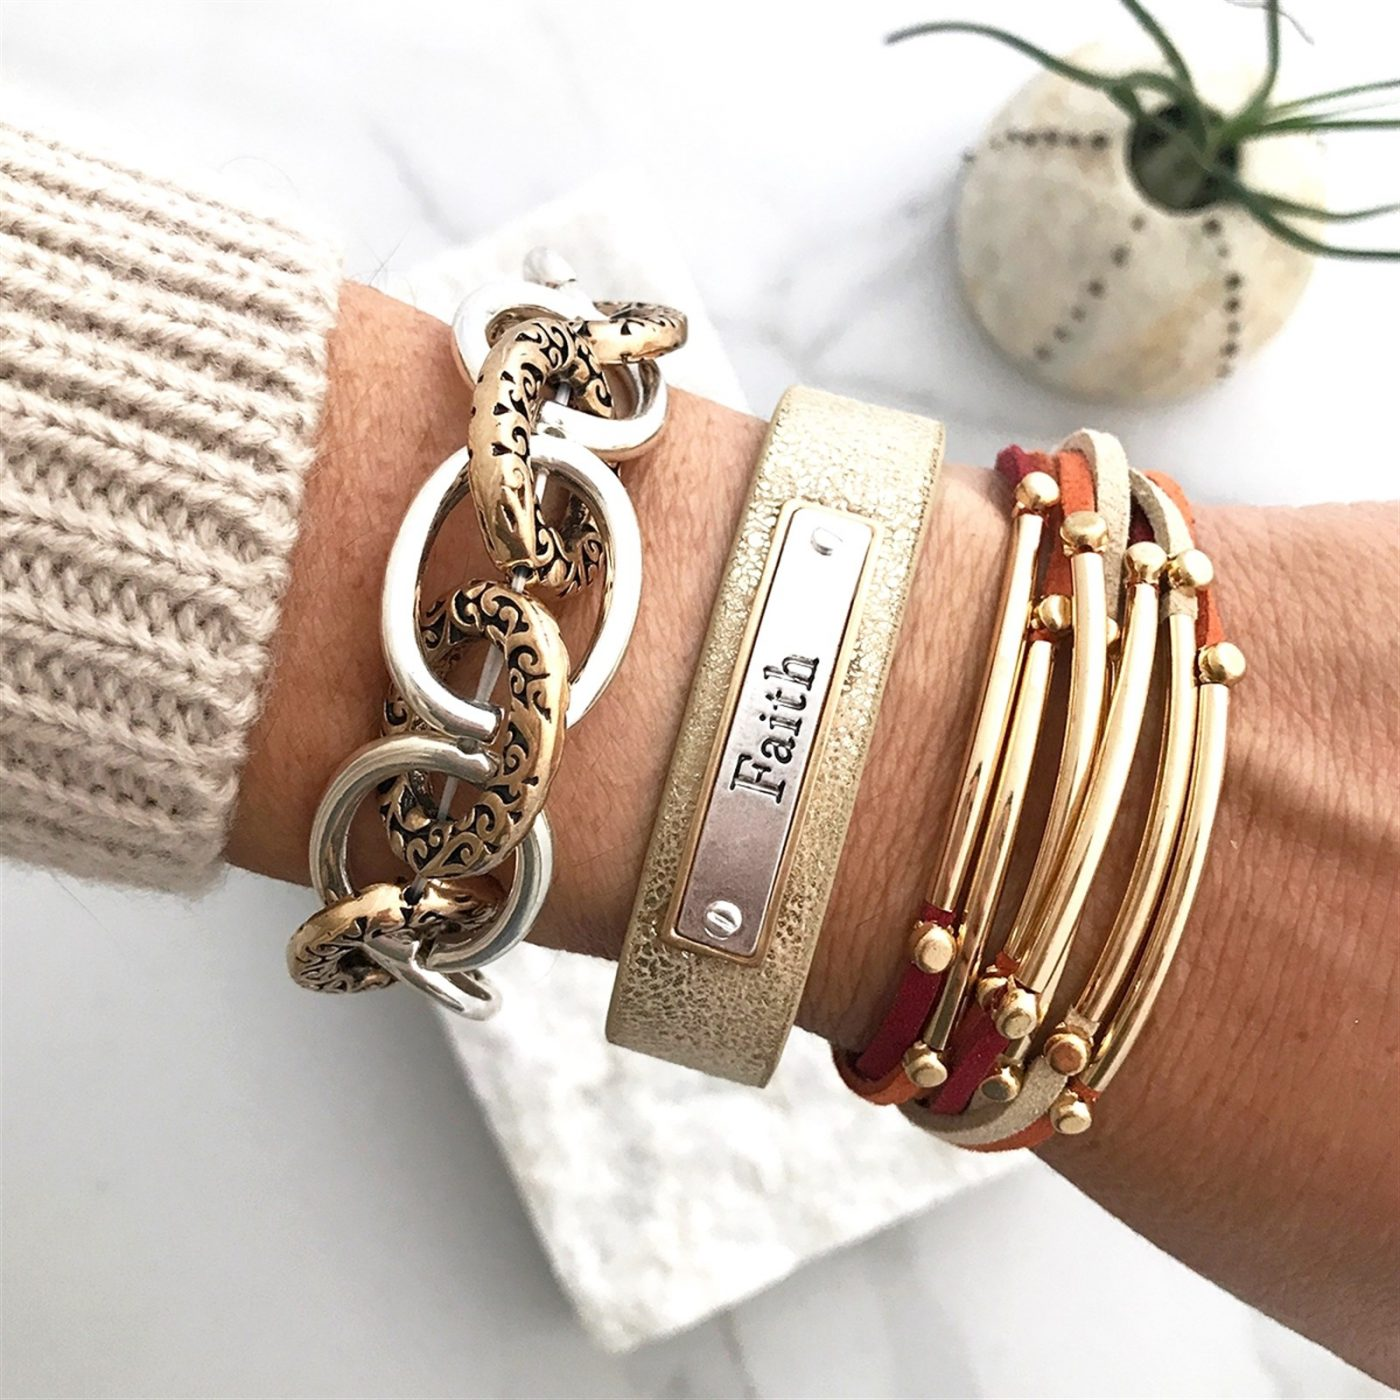 Was $22.99 - Now $12.99 - Fall Bracelet Collection   Free Shipping (10/15 to 10/17)